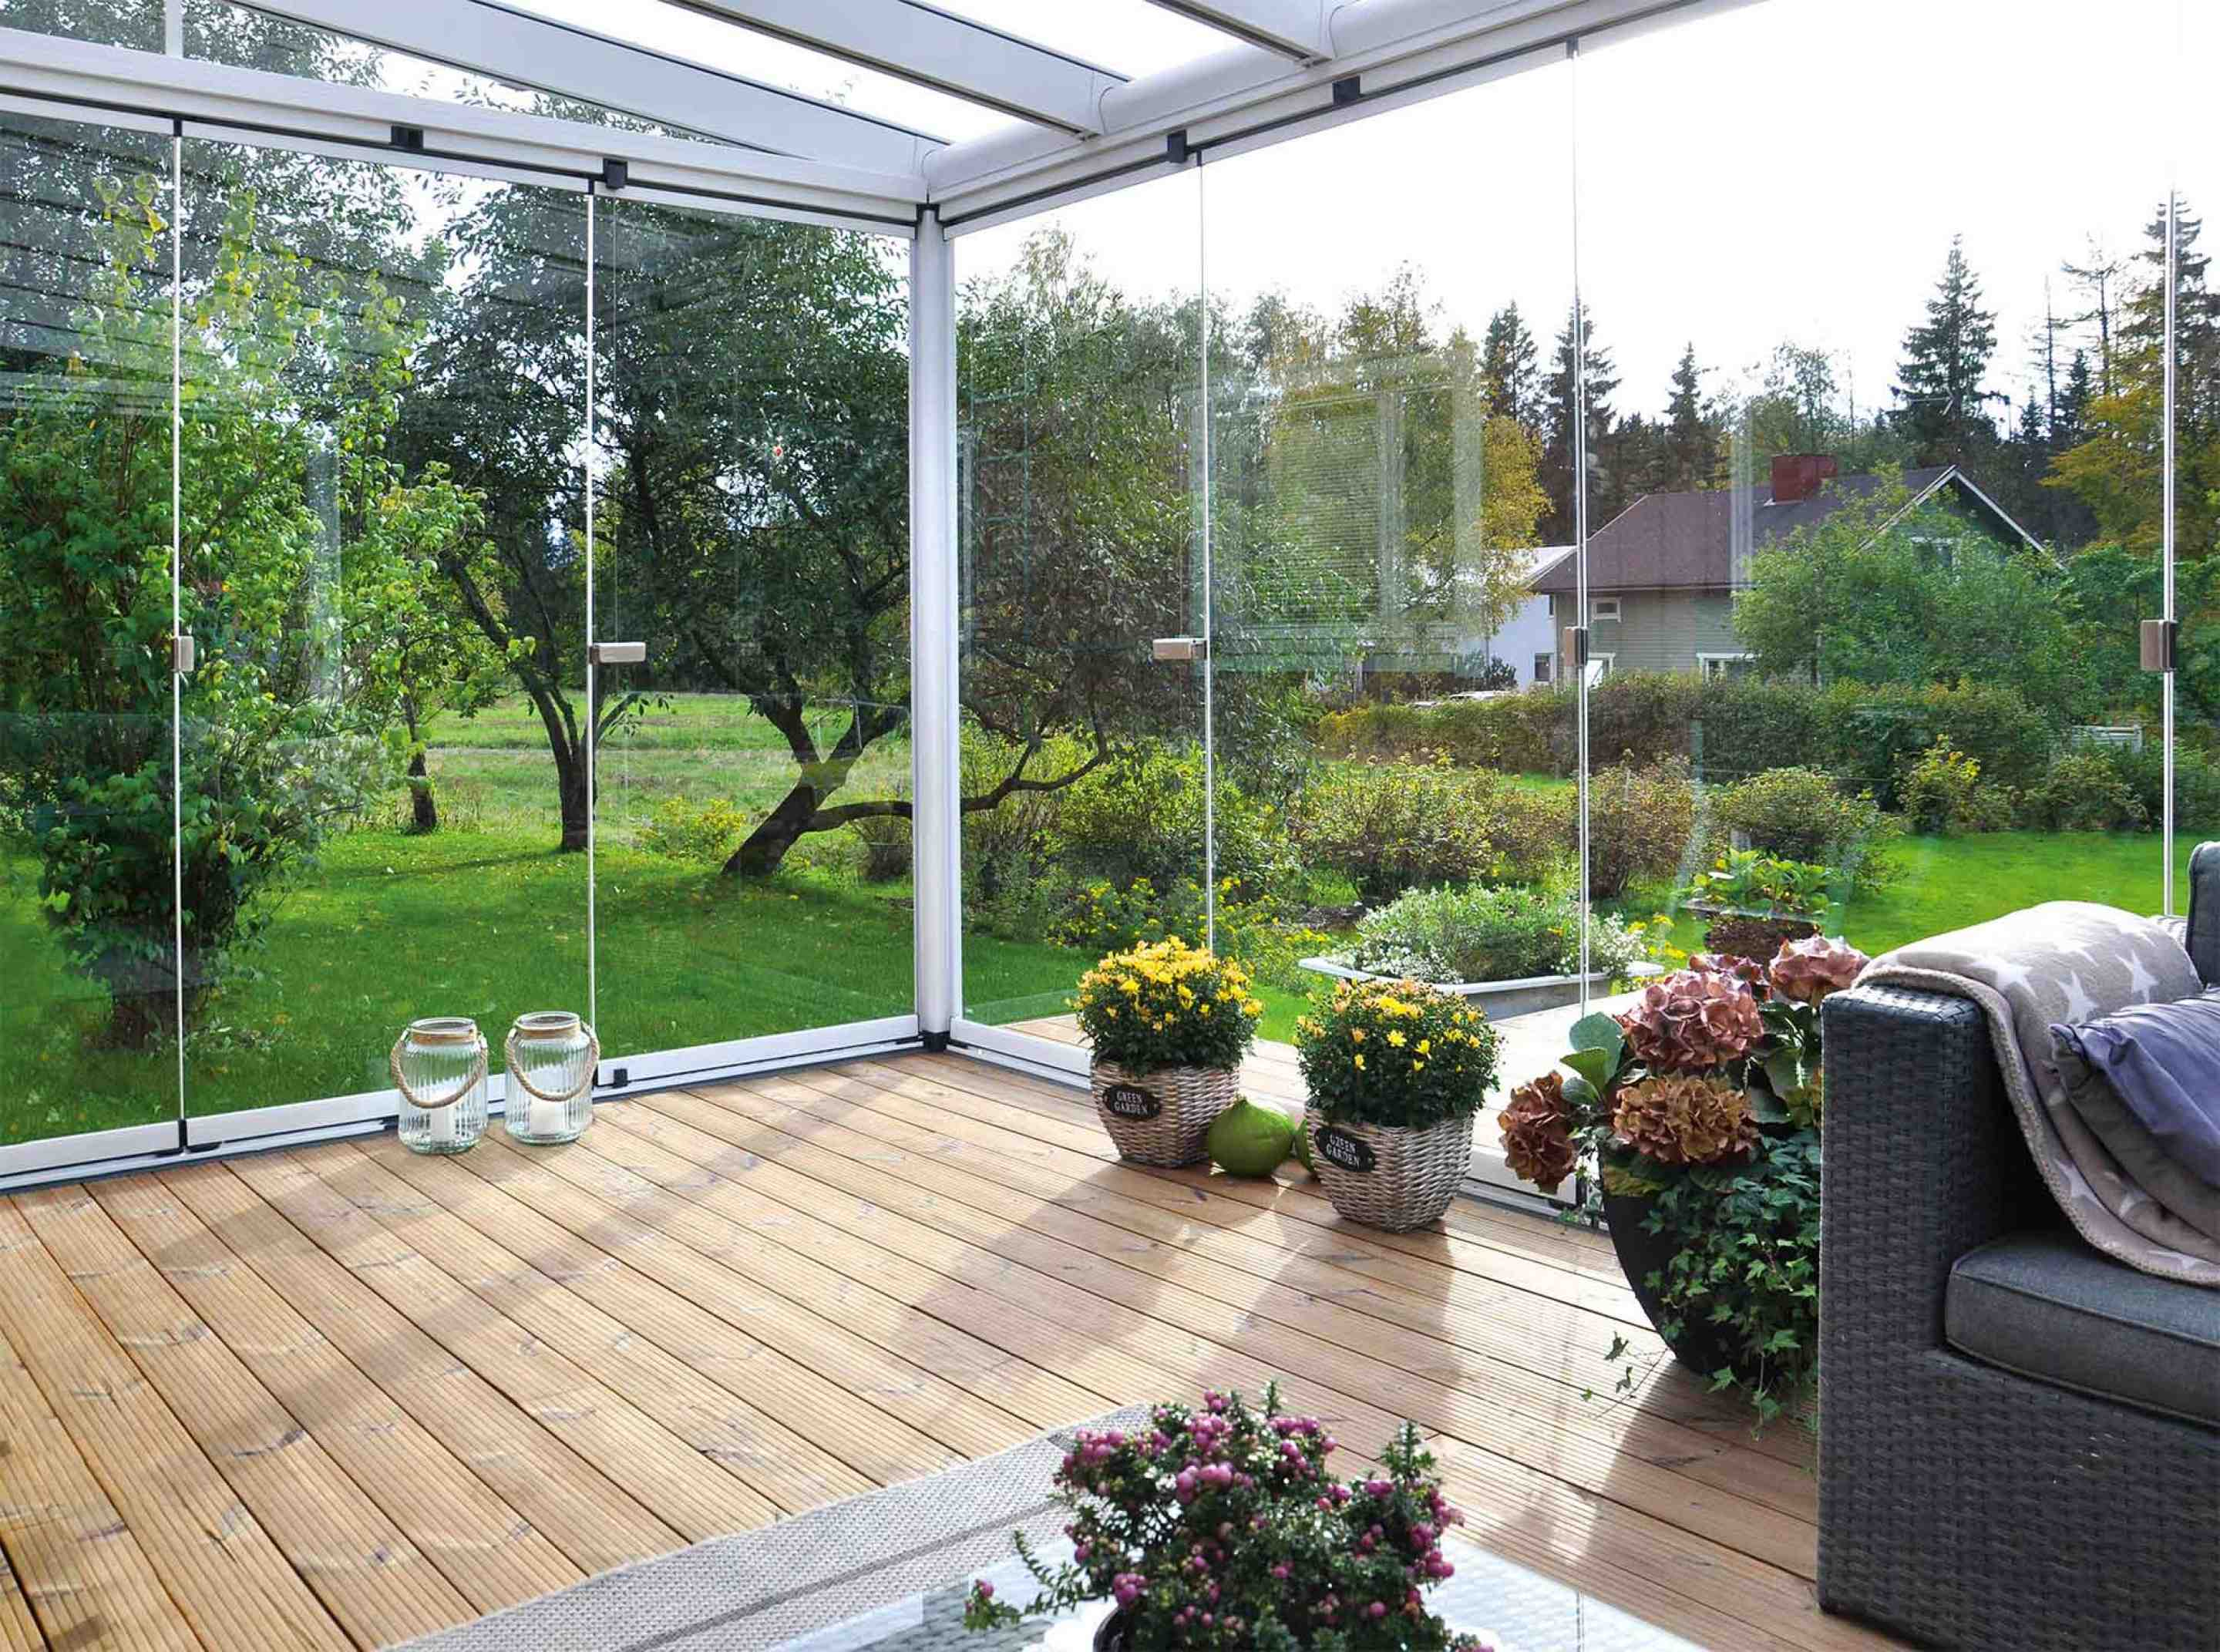 Glass curtains and immovable glass roof